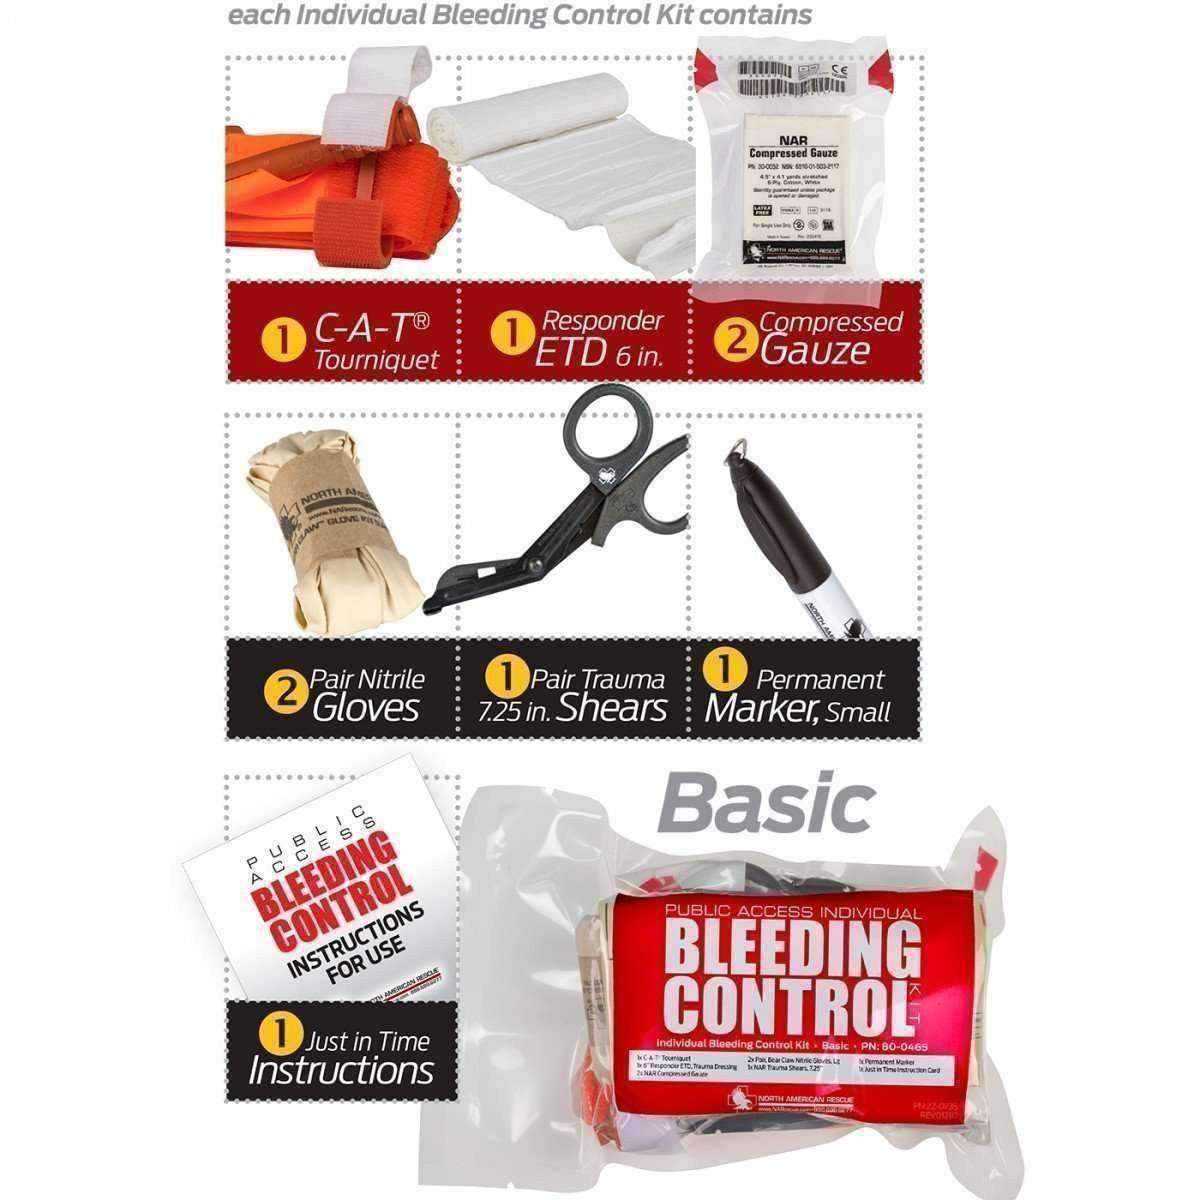 Public Access Bleeding Control 8 Pack - Vacuum Sealed - MED-TAC International Corp..